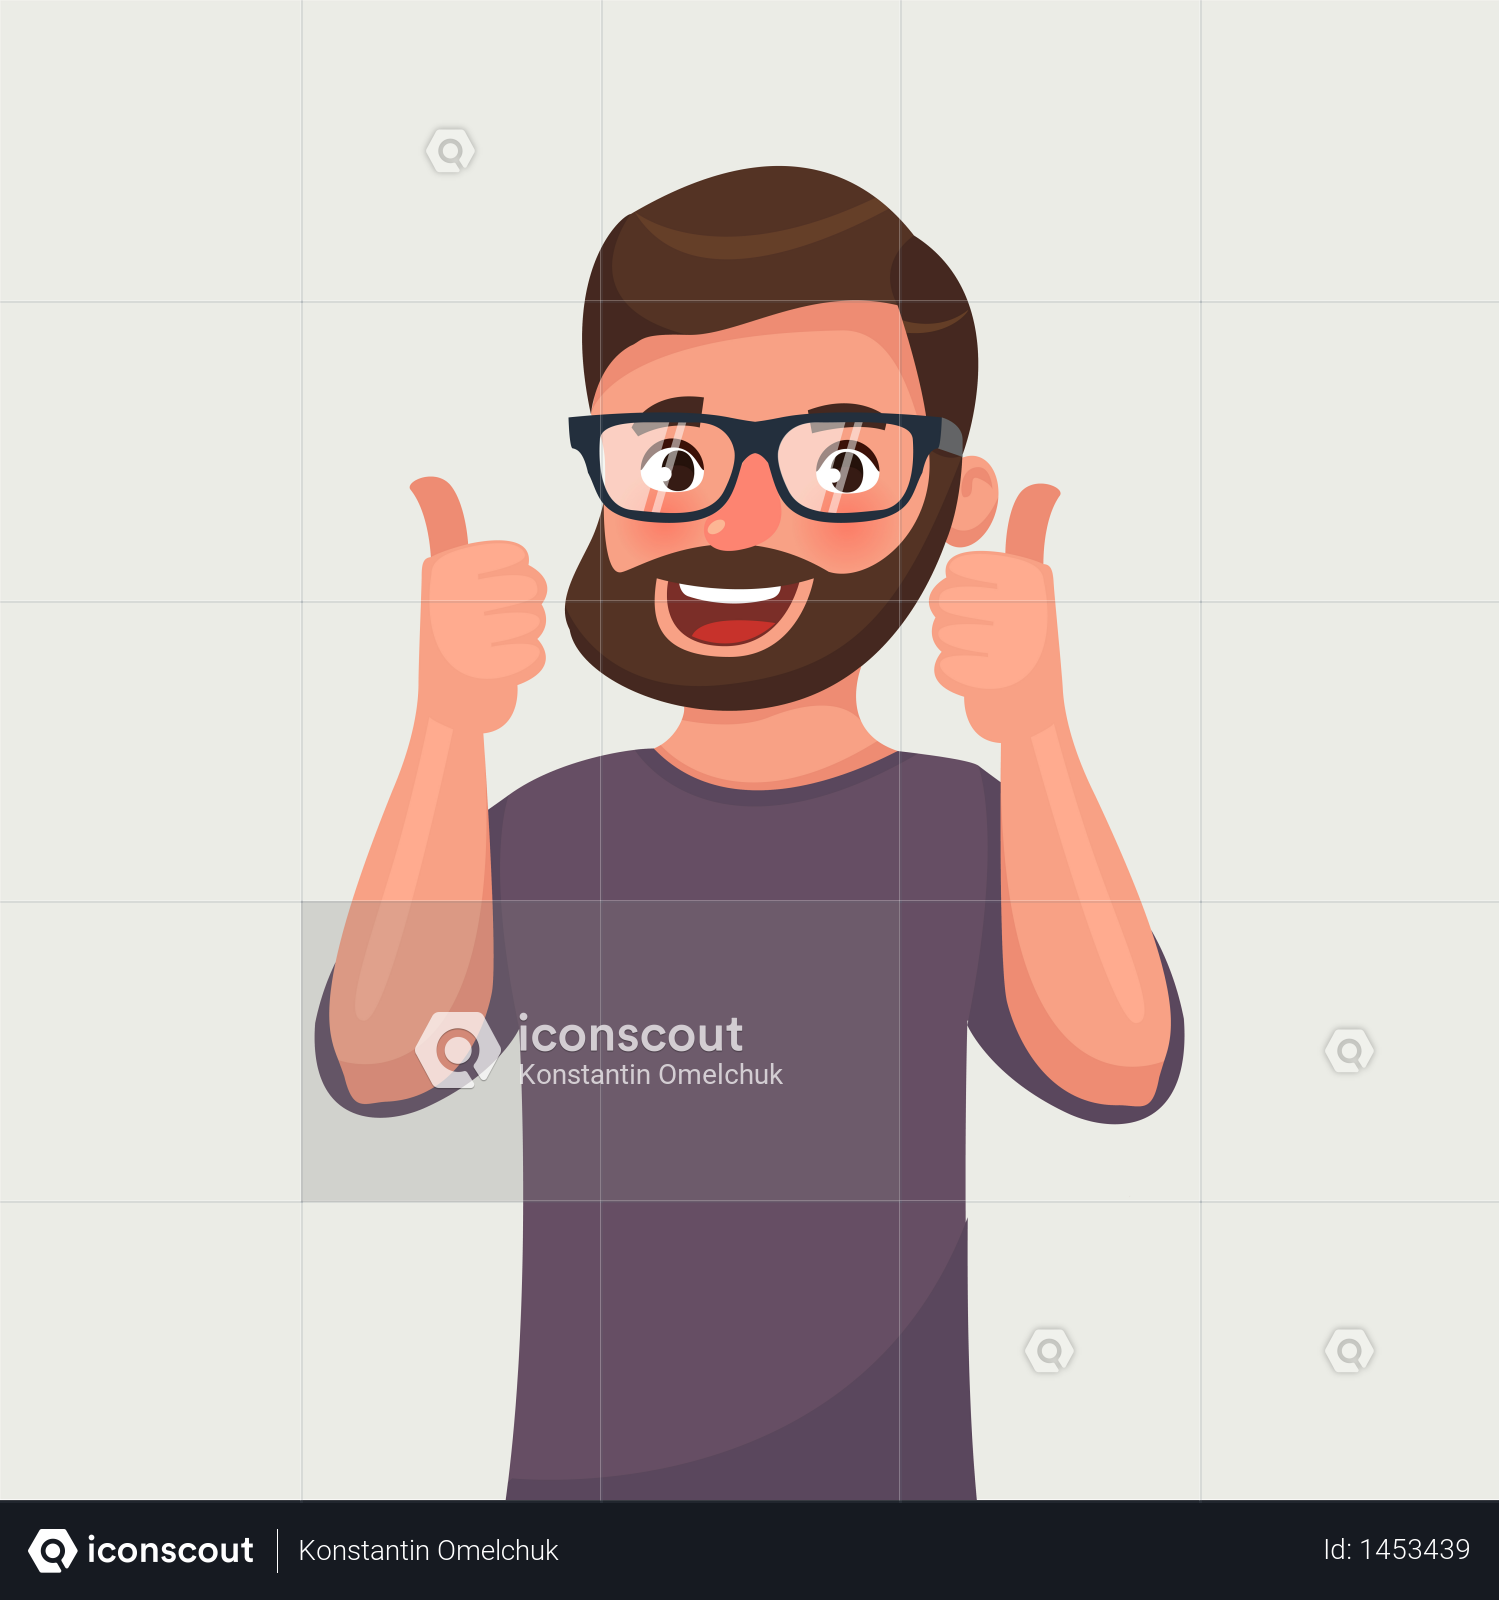 Premium Happy Man In Glasses With Beard Shows Gesture Cool Illustration Download In Png Vector Format Illustration People Illustration Cool Stuff